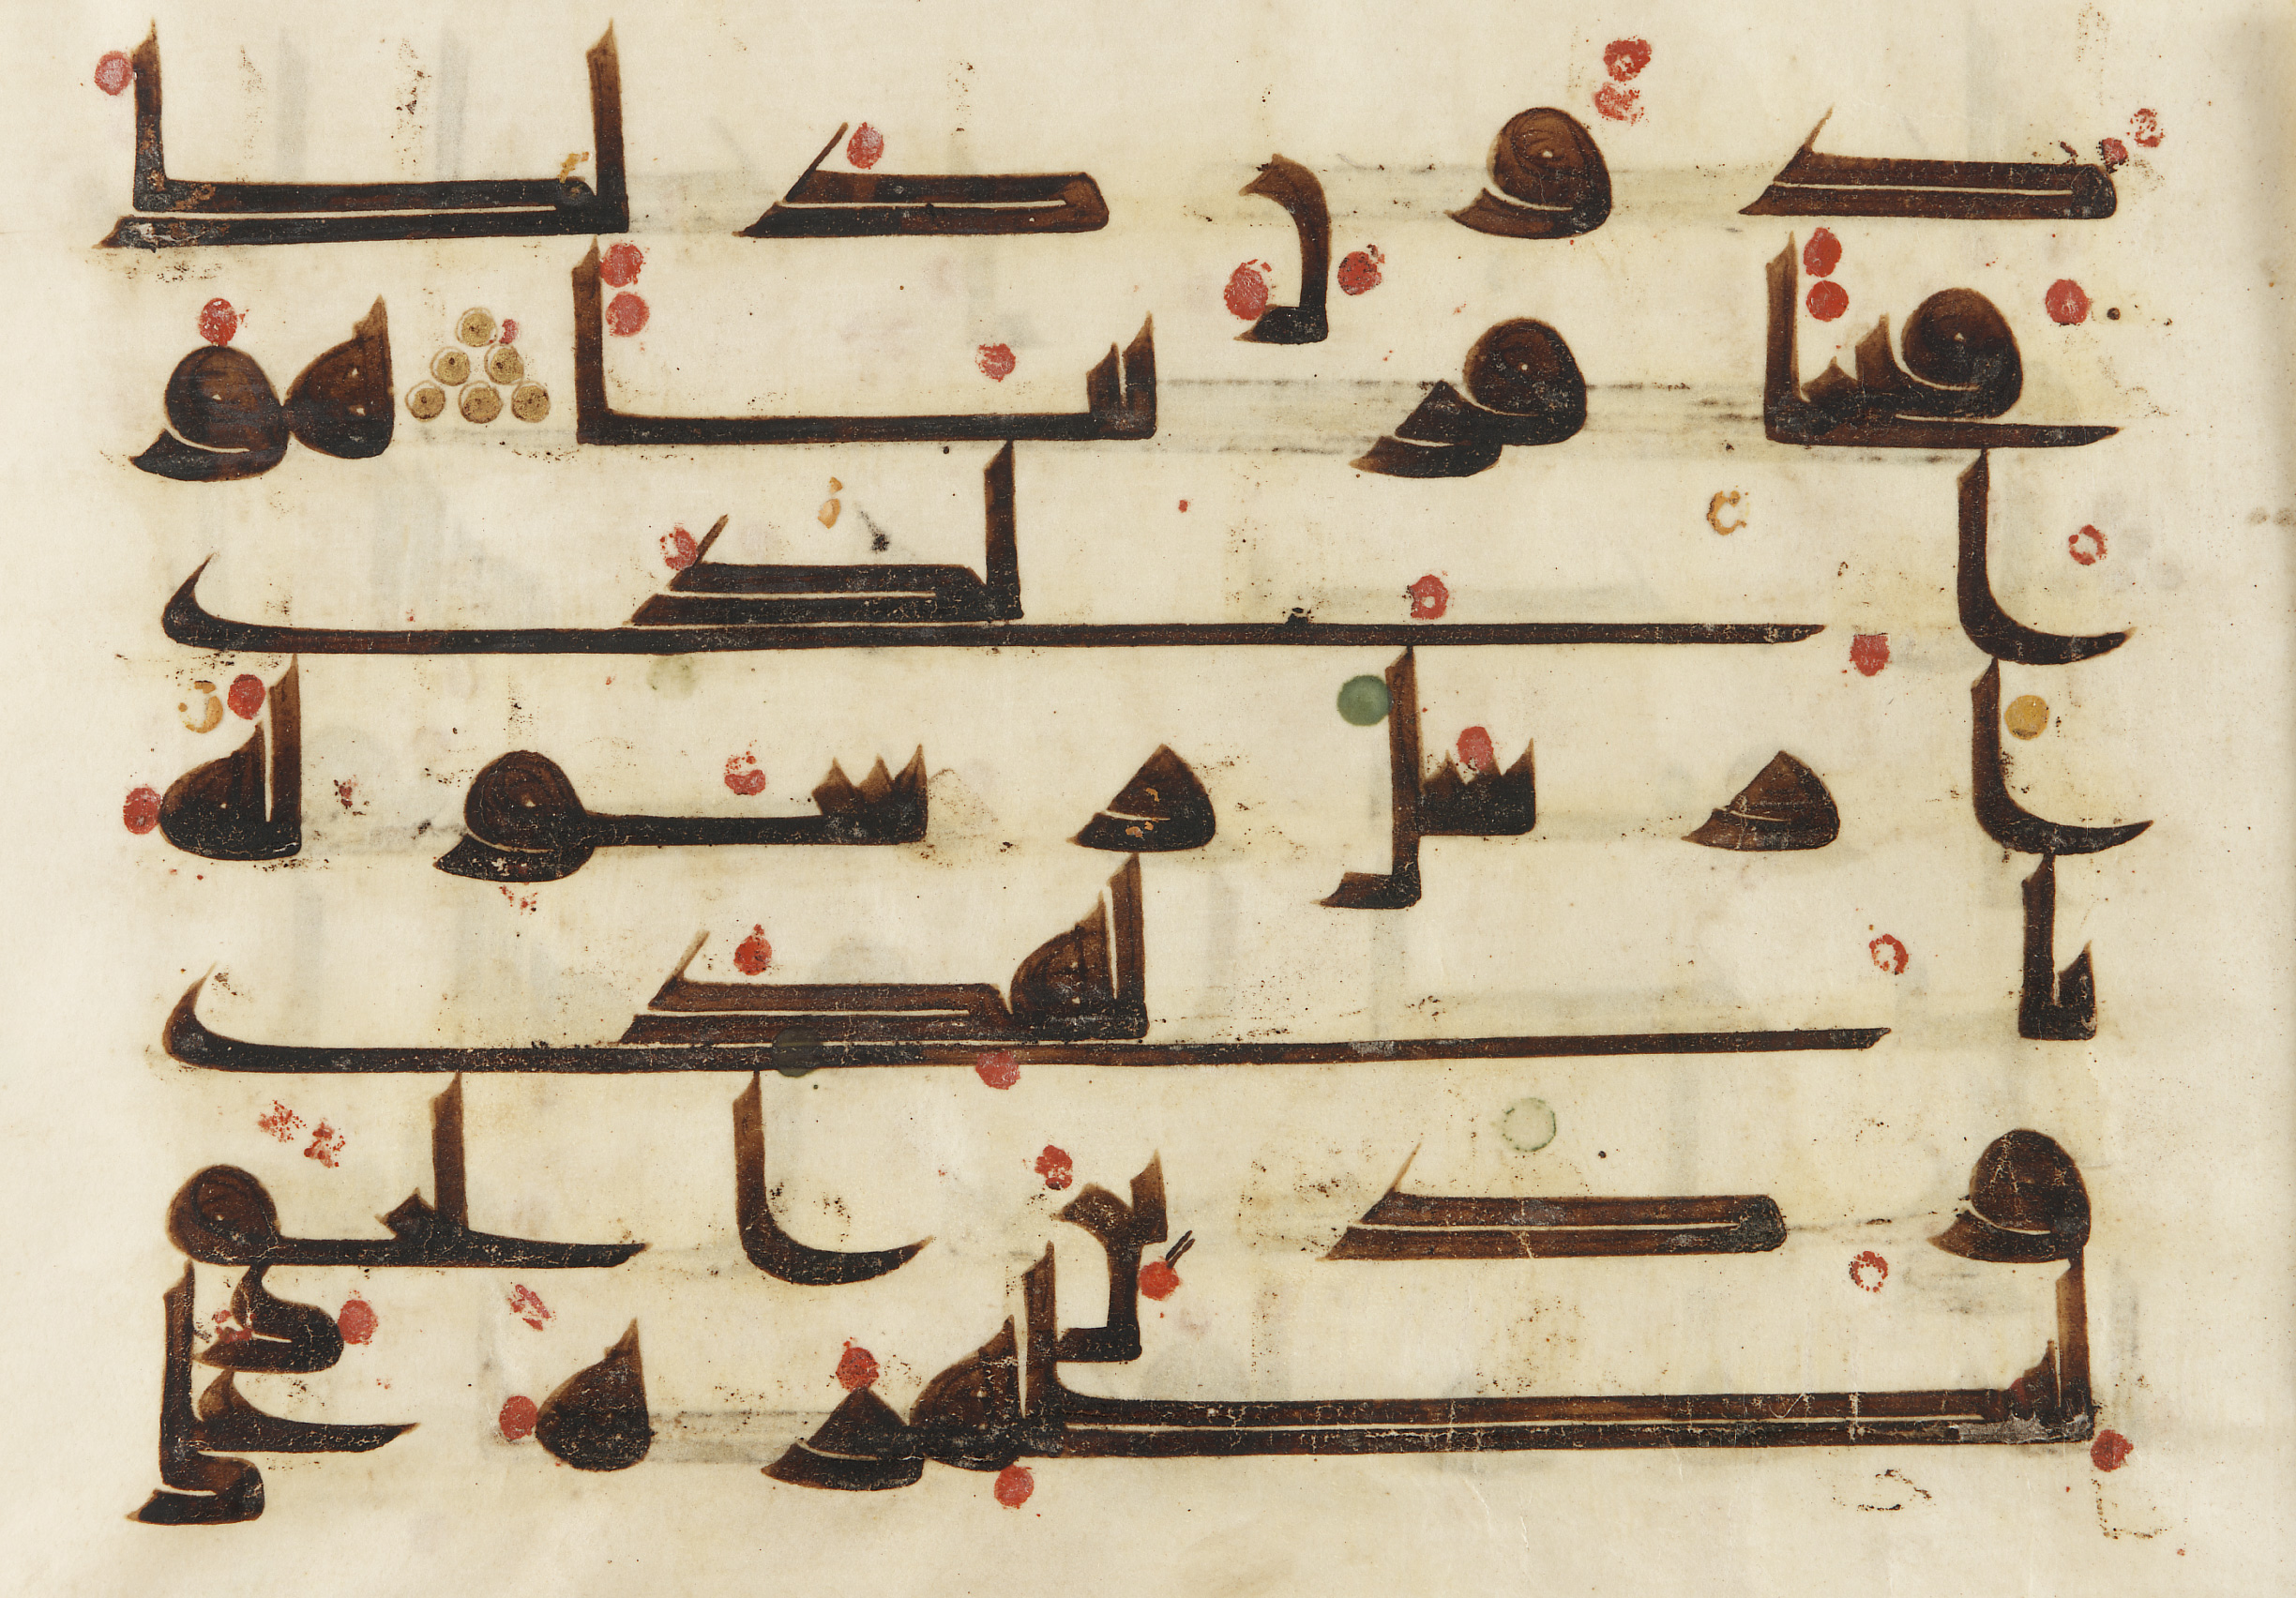 Kufic script, 8th or 9th century